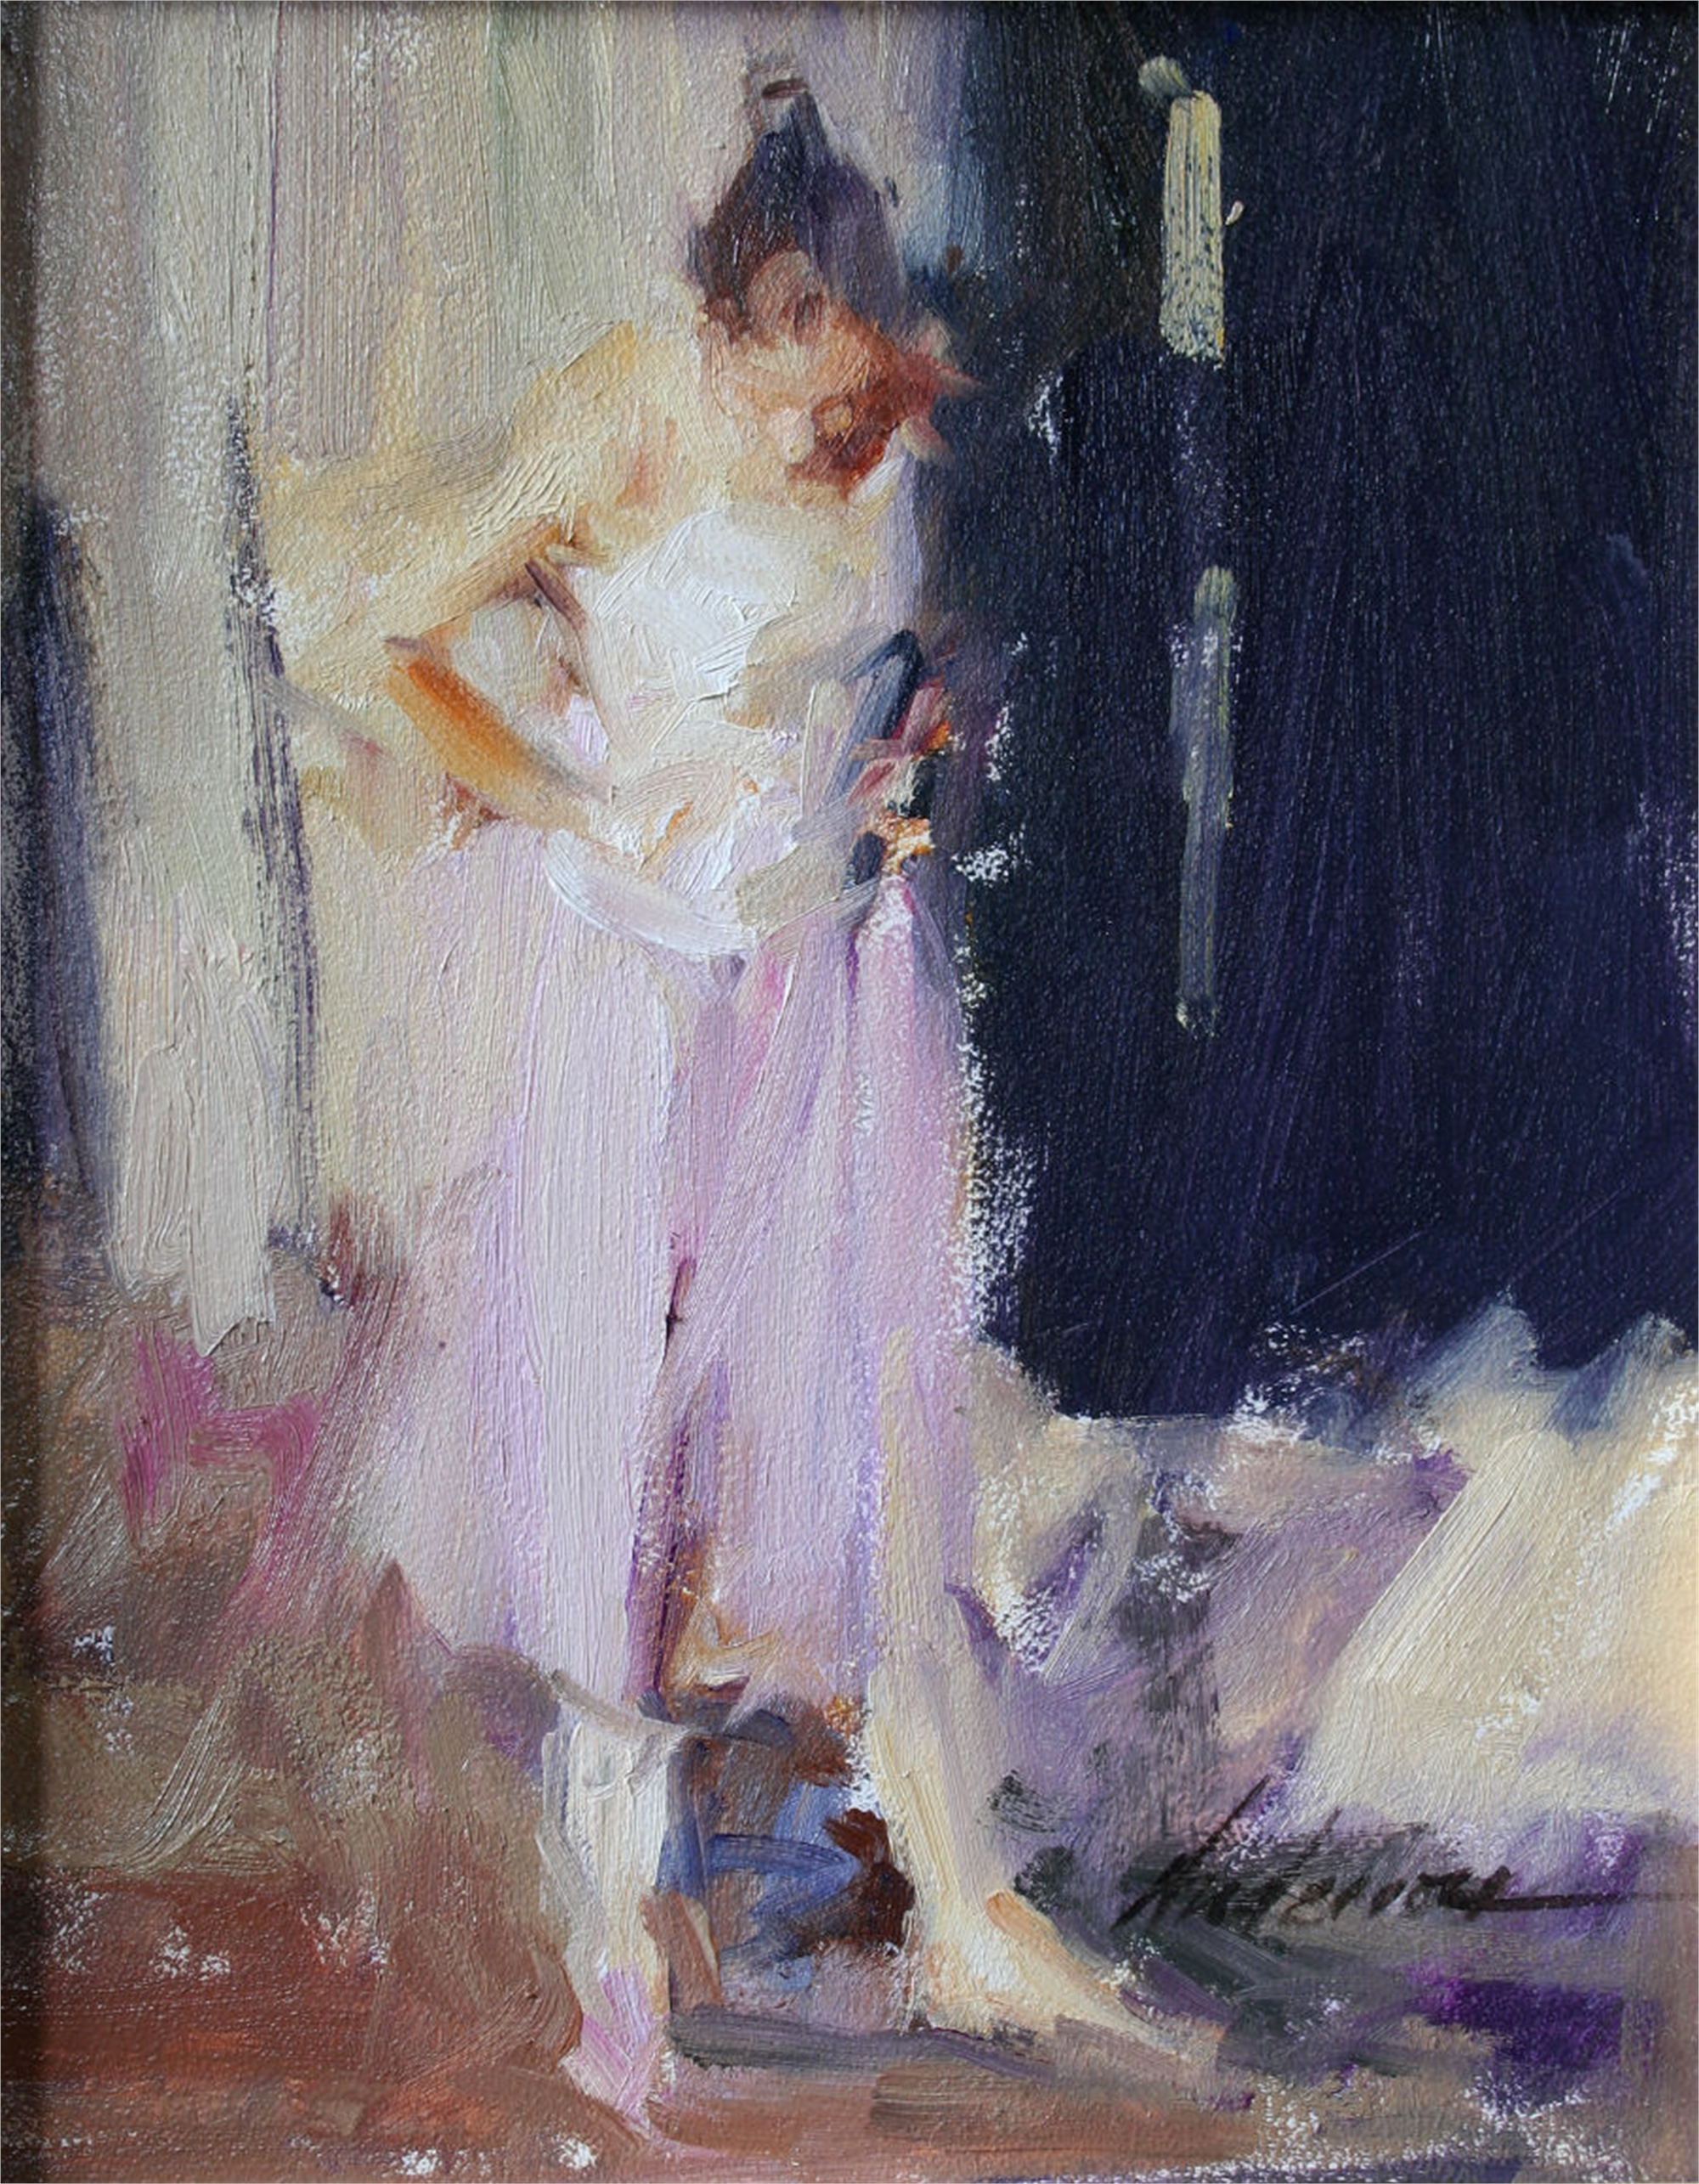 Young Girl in Dance Studio by Carolyn Anderson